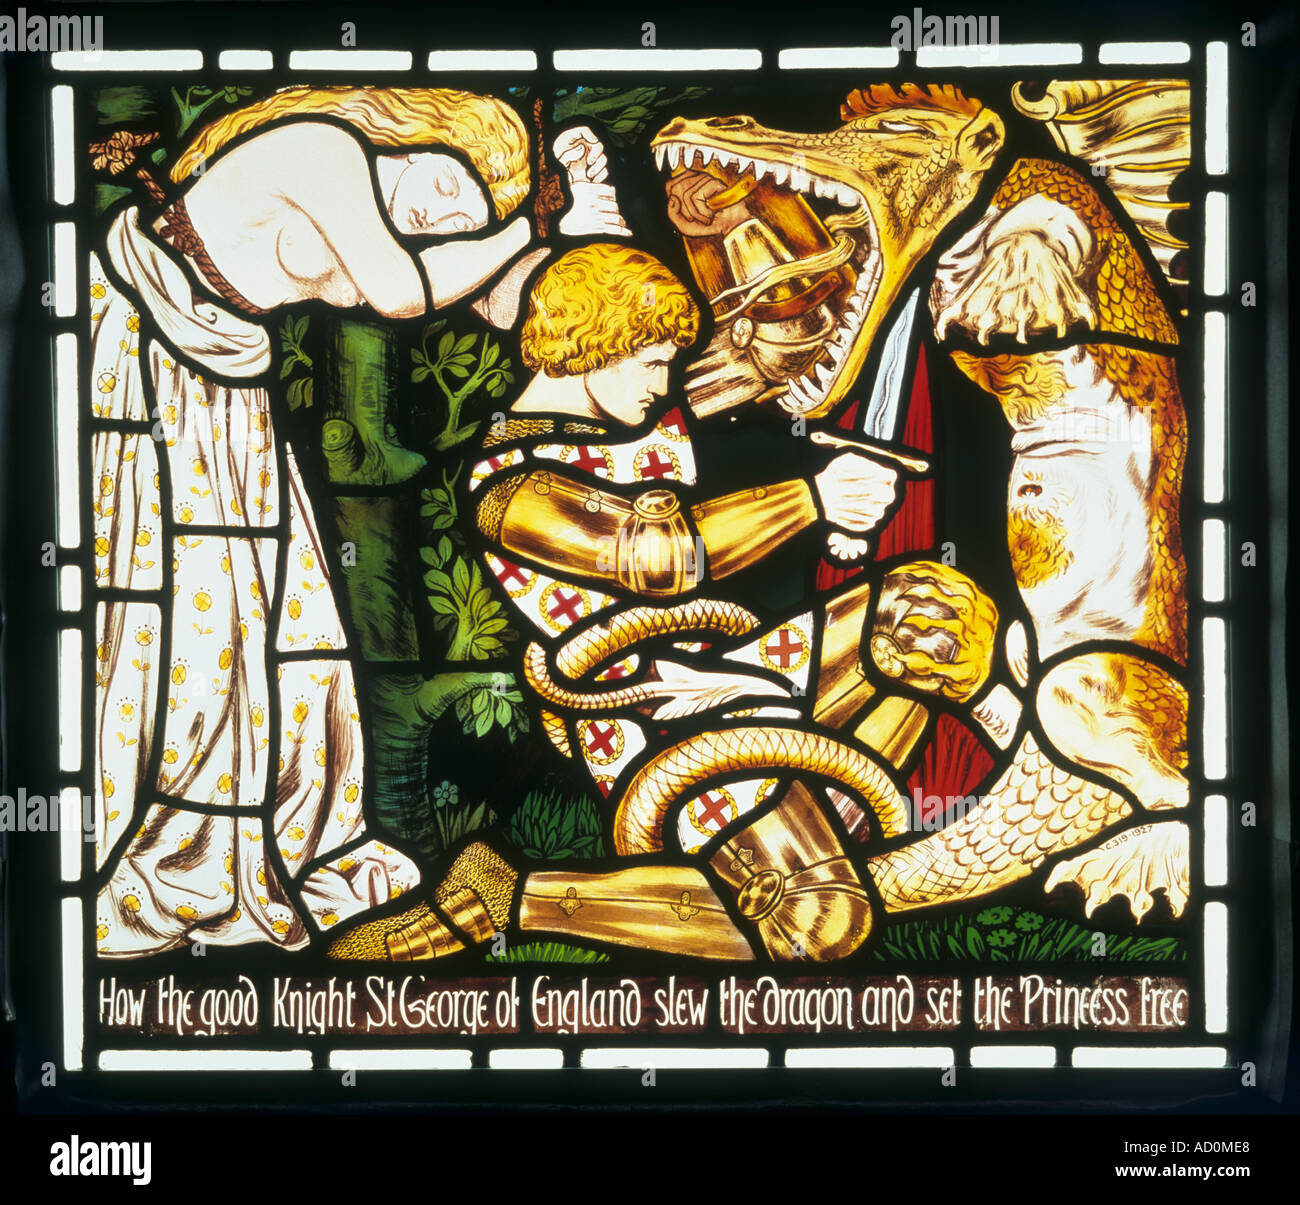 The Legend of St George by Dante Gabriel Rossetti. England, late 19th century. - Stock Image